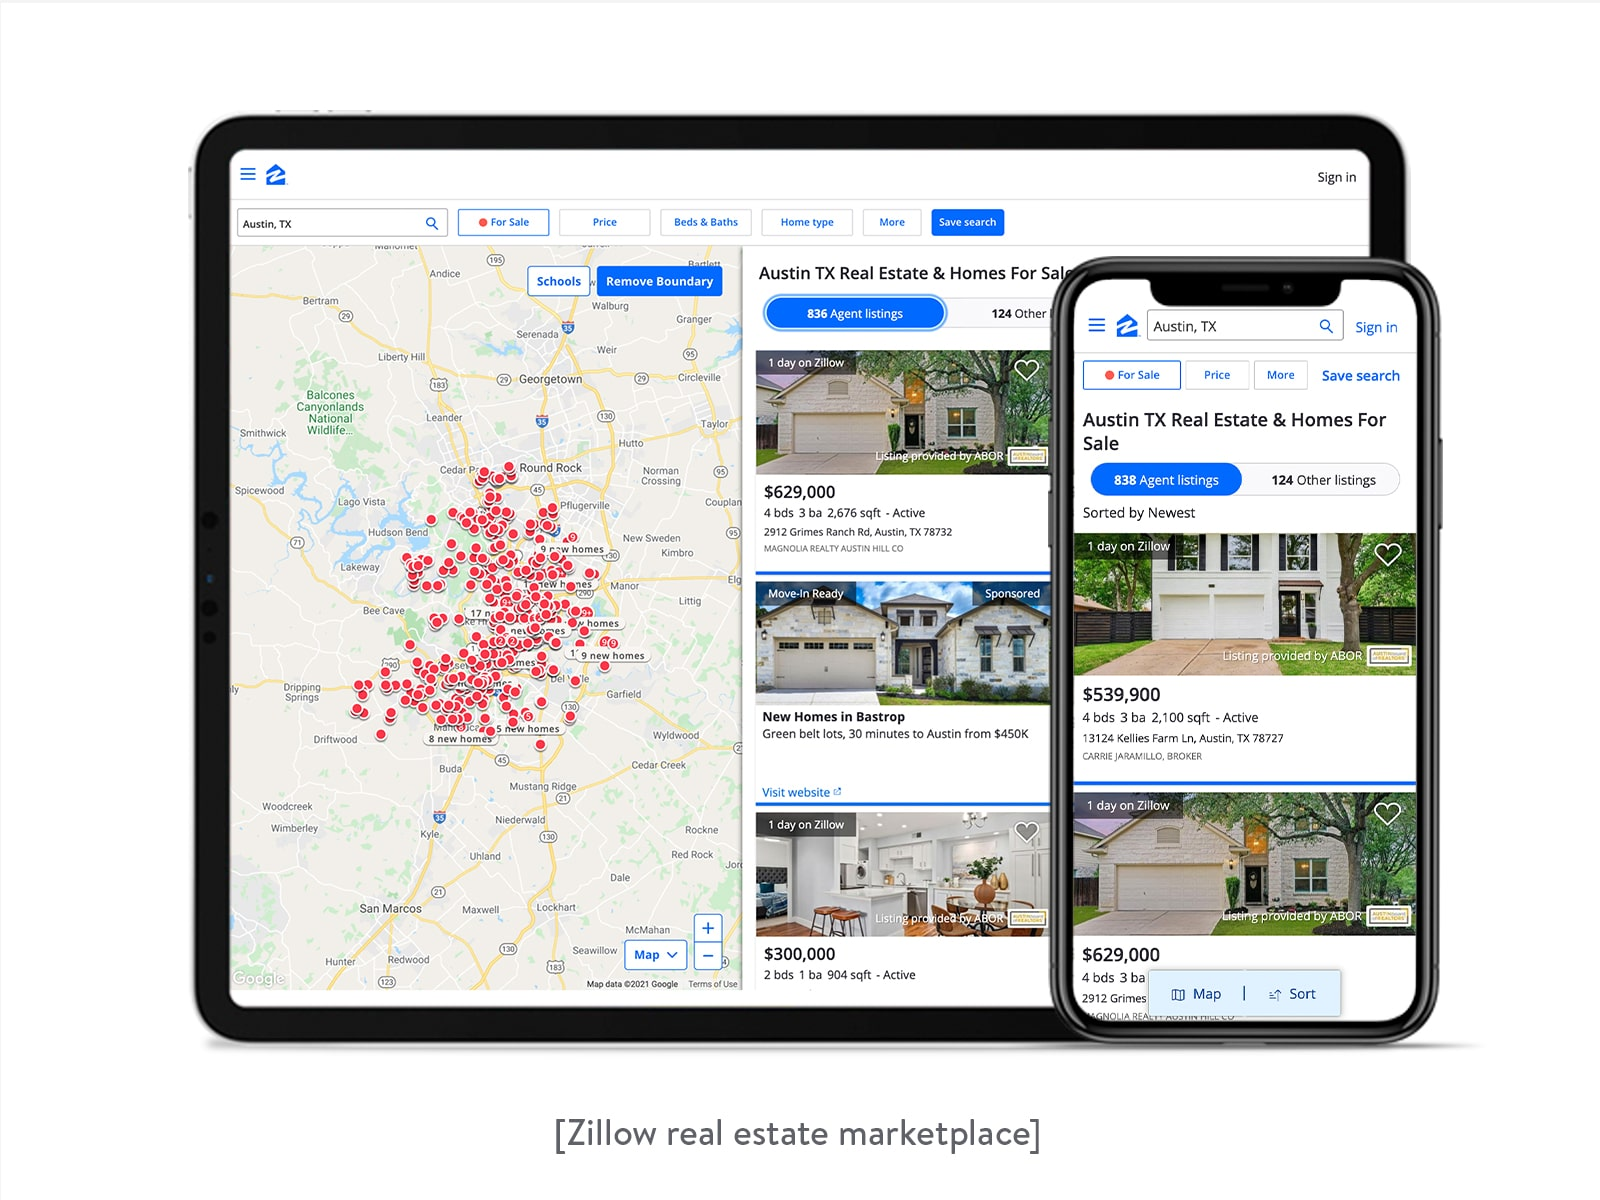 zillow real estate marketplace